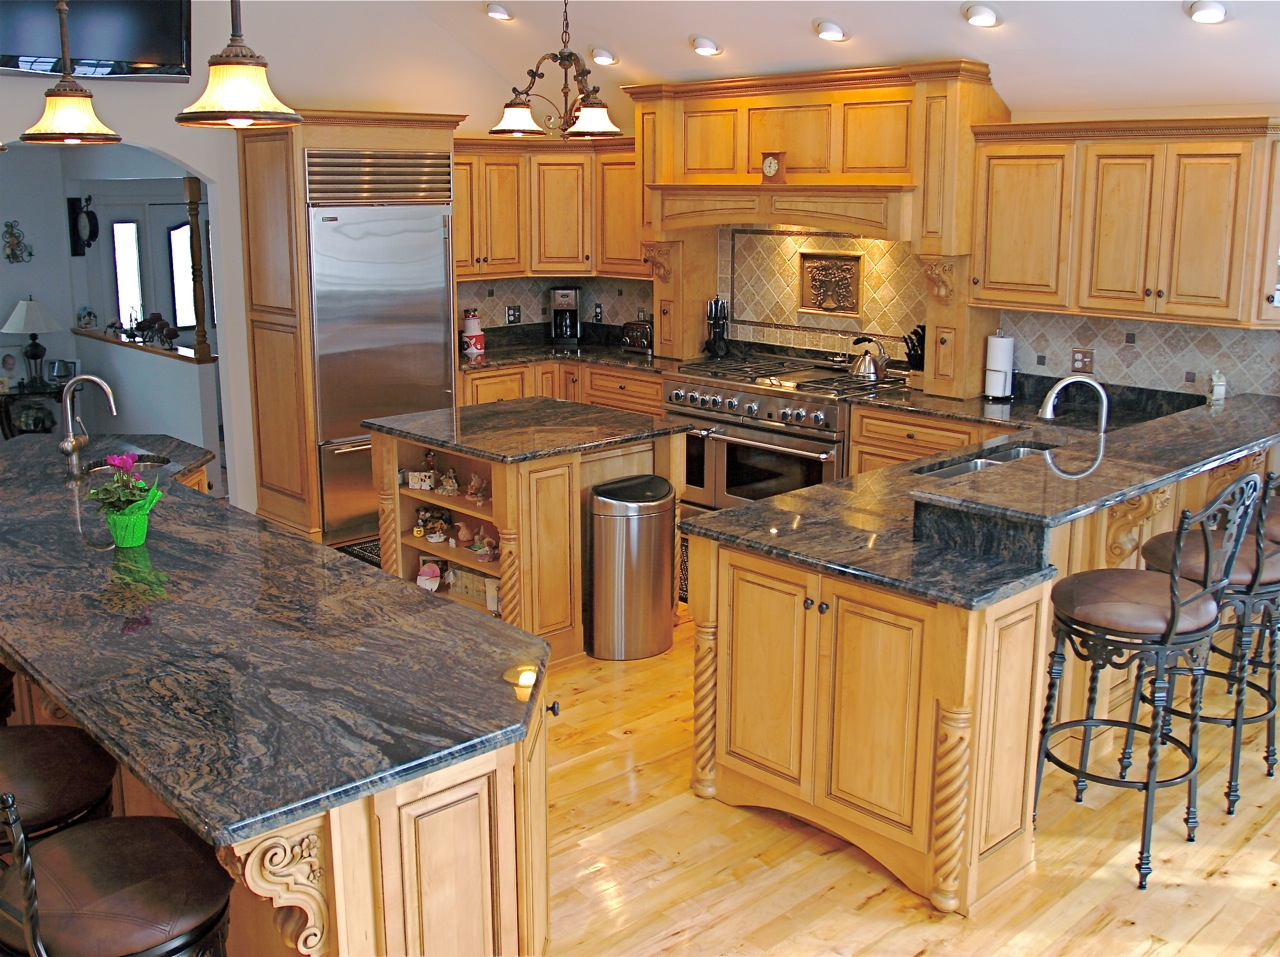 kitchen cabinets ideas images gallery kitchens for granite countertop countertops best white